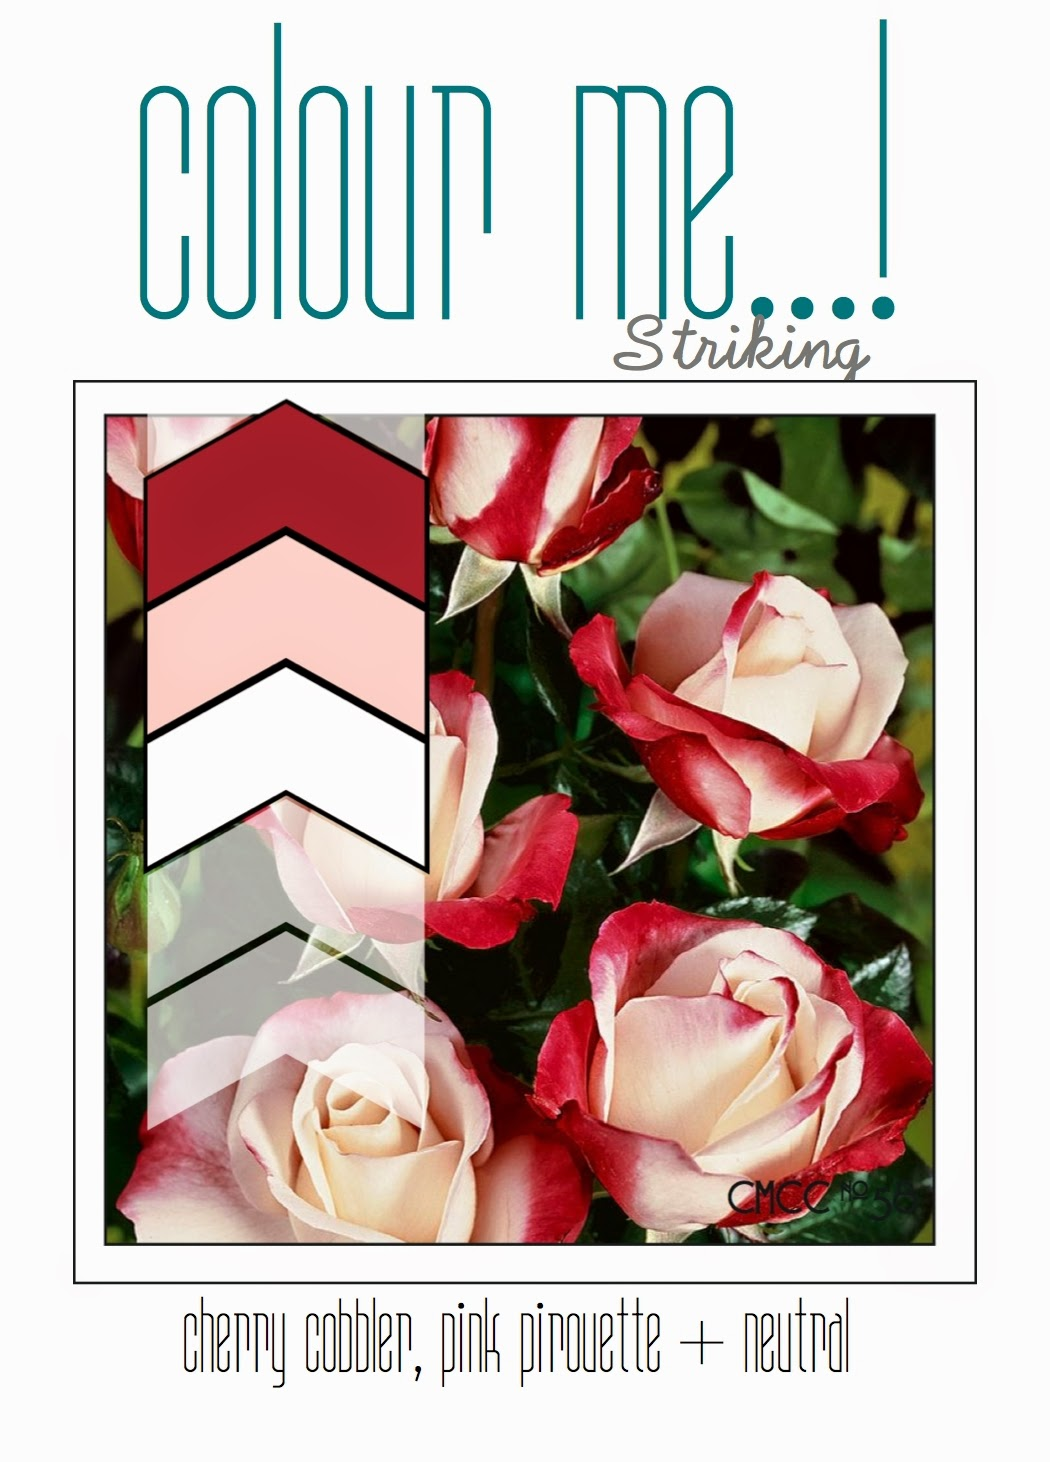 http://colourmecardchallenge.blogspot.com/2015/02/cmcc58-colour-me-striking.html